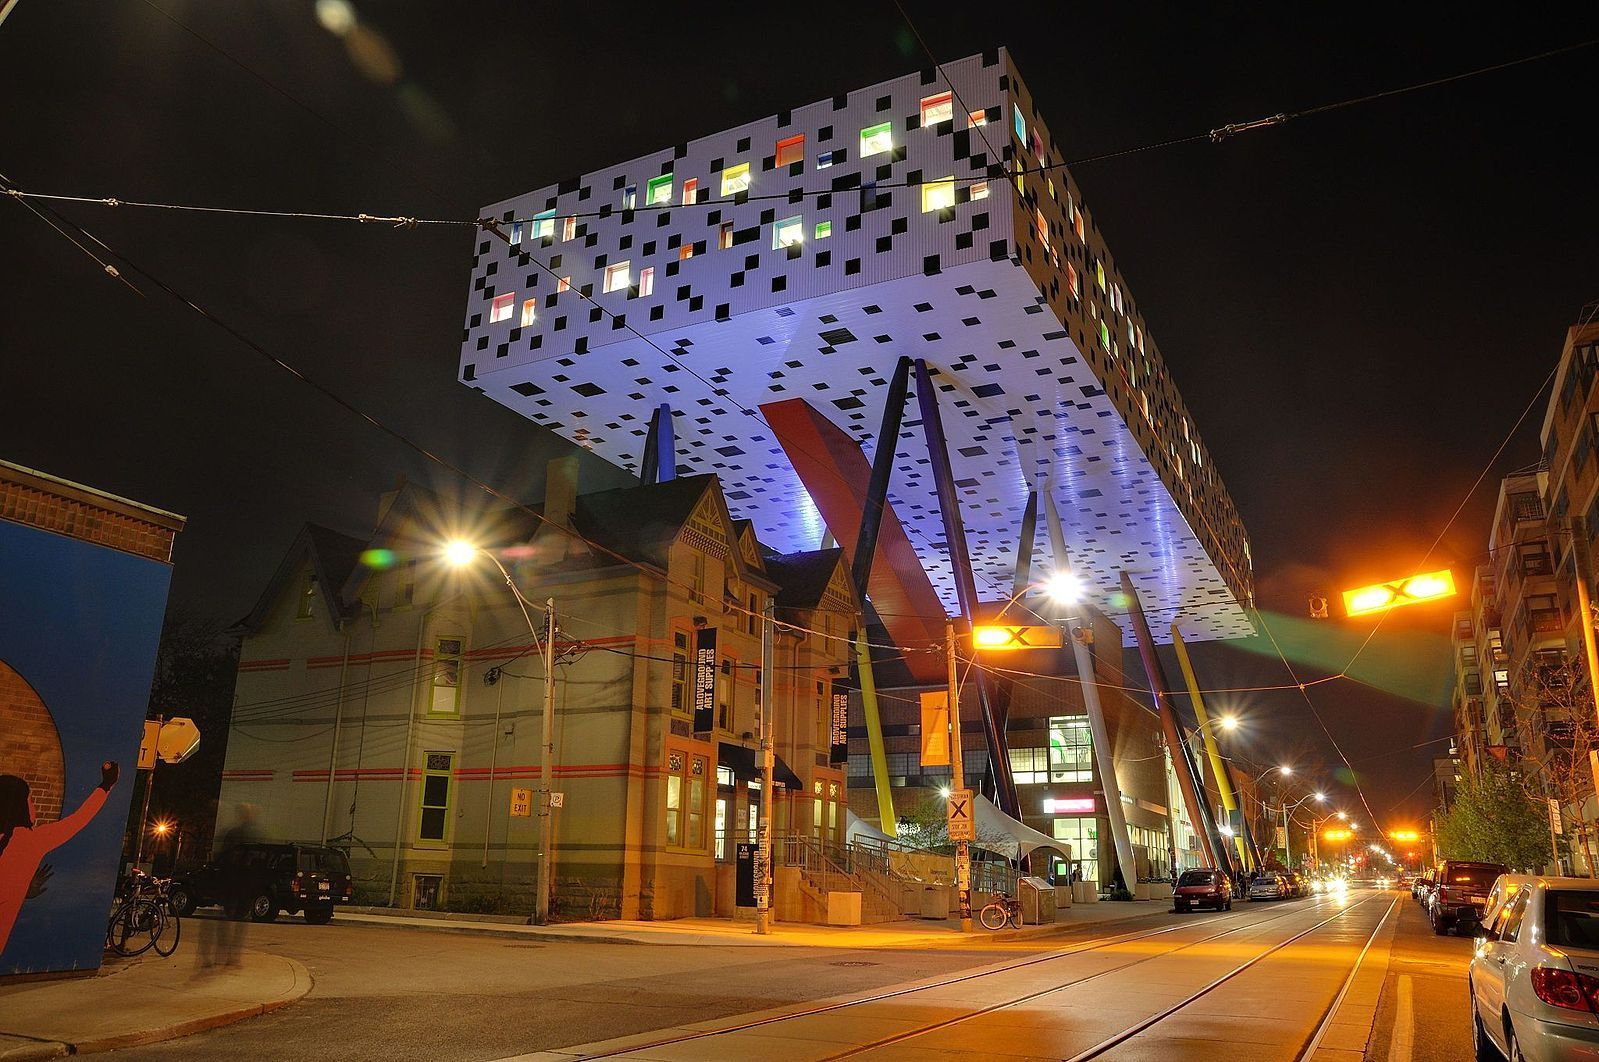 Gallery Of Morphosis Teeple Architects Among Firms To Lead Ocad University 39 S Expansion In